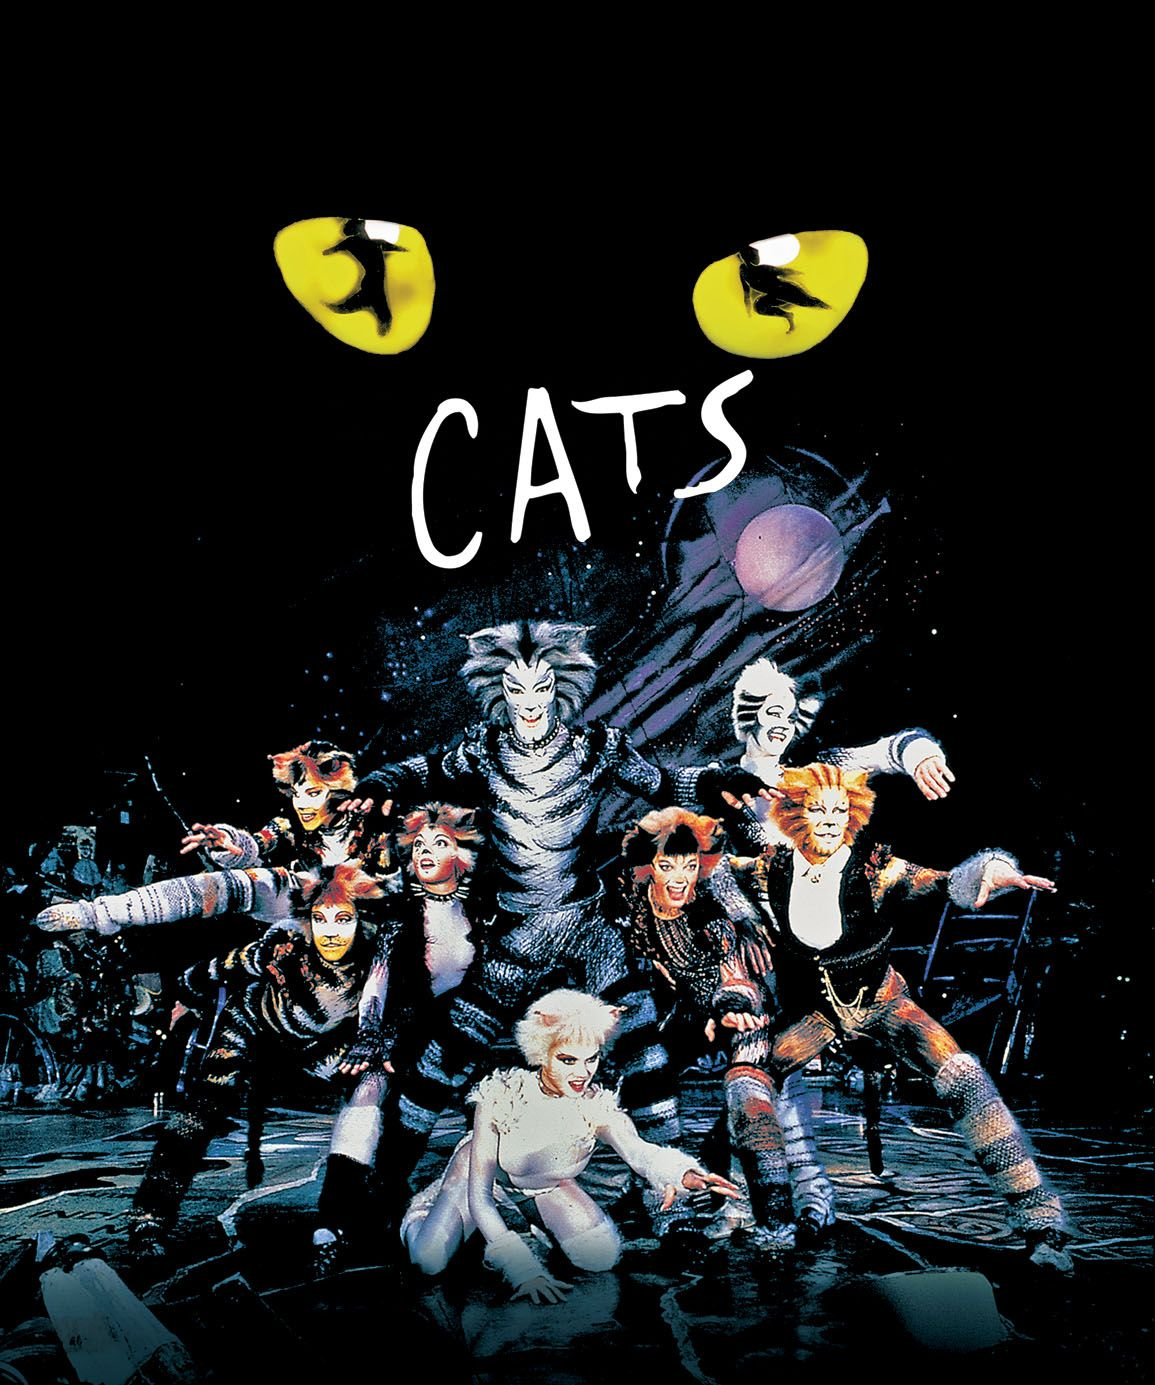 Movie Poster jungle book movie poster : Tom Hooper to Direct a Feature Adaptation of Cats the ...